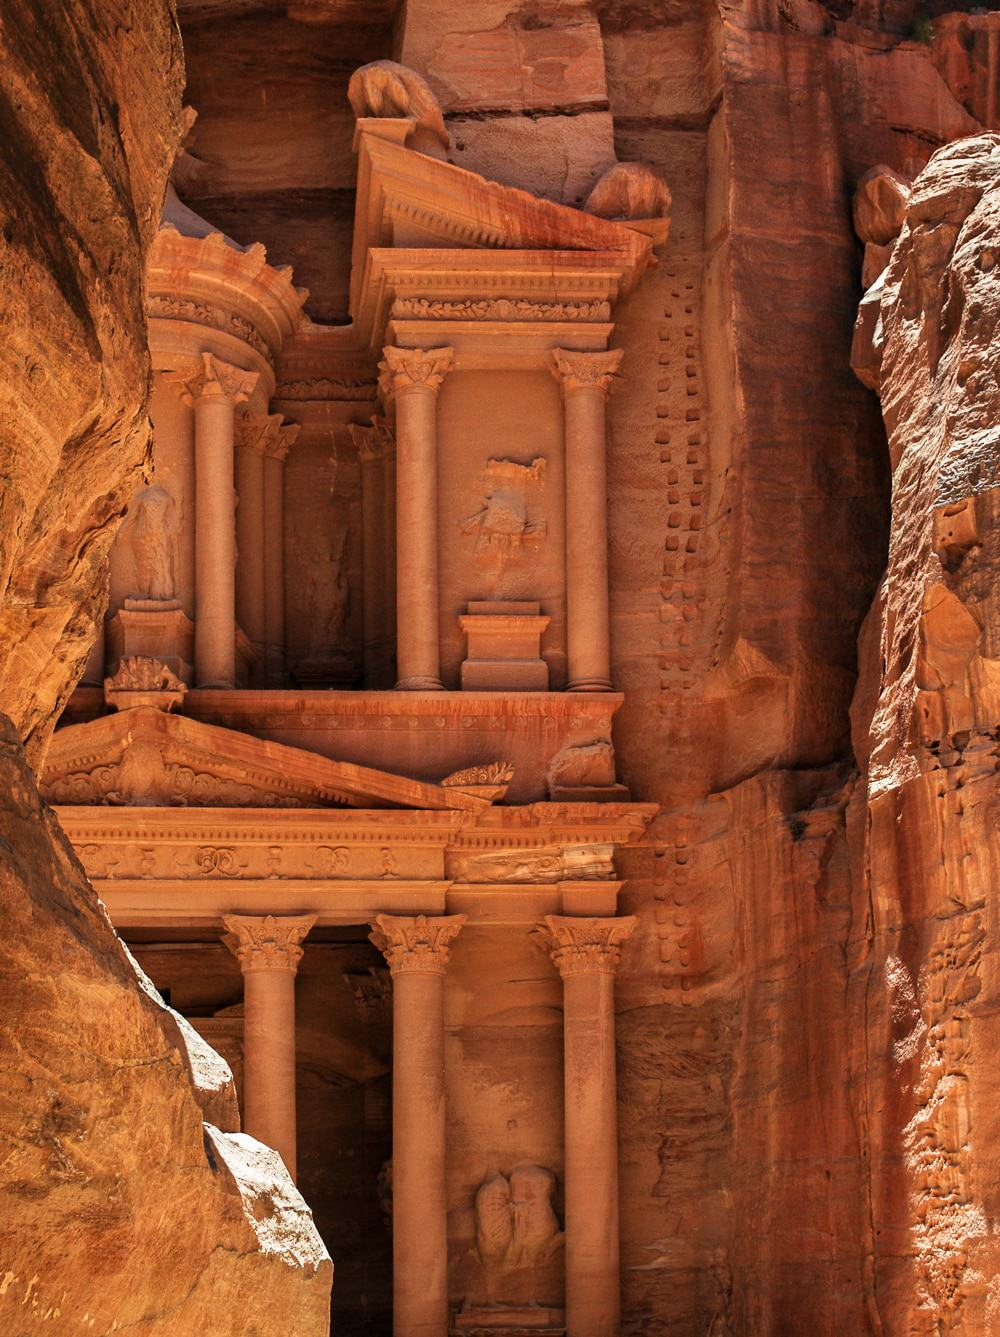 Become Indiana Jones for a day! Petra is one of the wonders of the world. Here you will find the most wonderful things not to miss while visiting Petra.